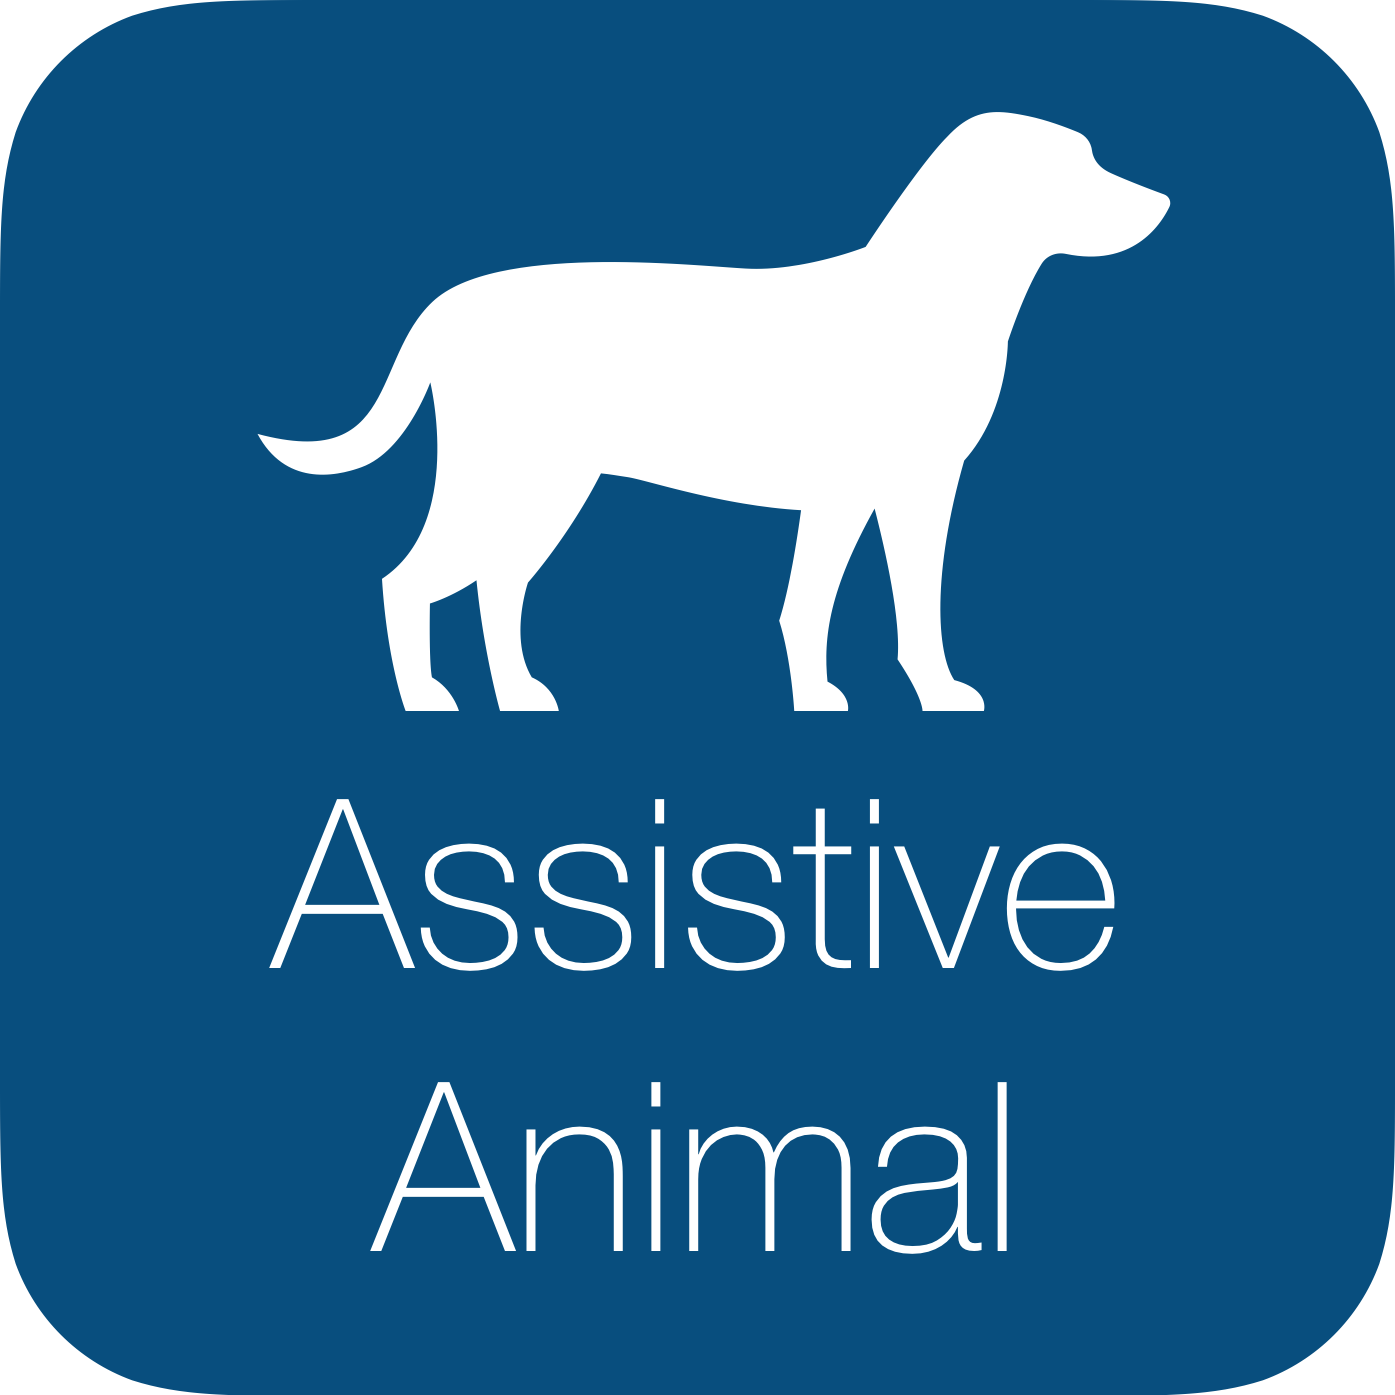 Assistive Animal Request Form